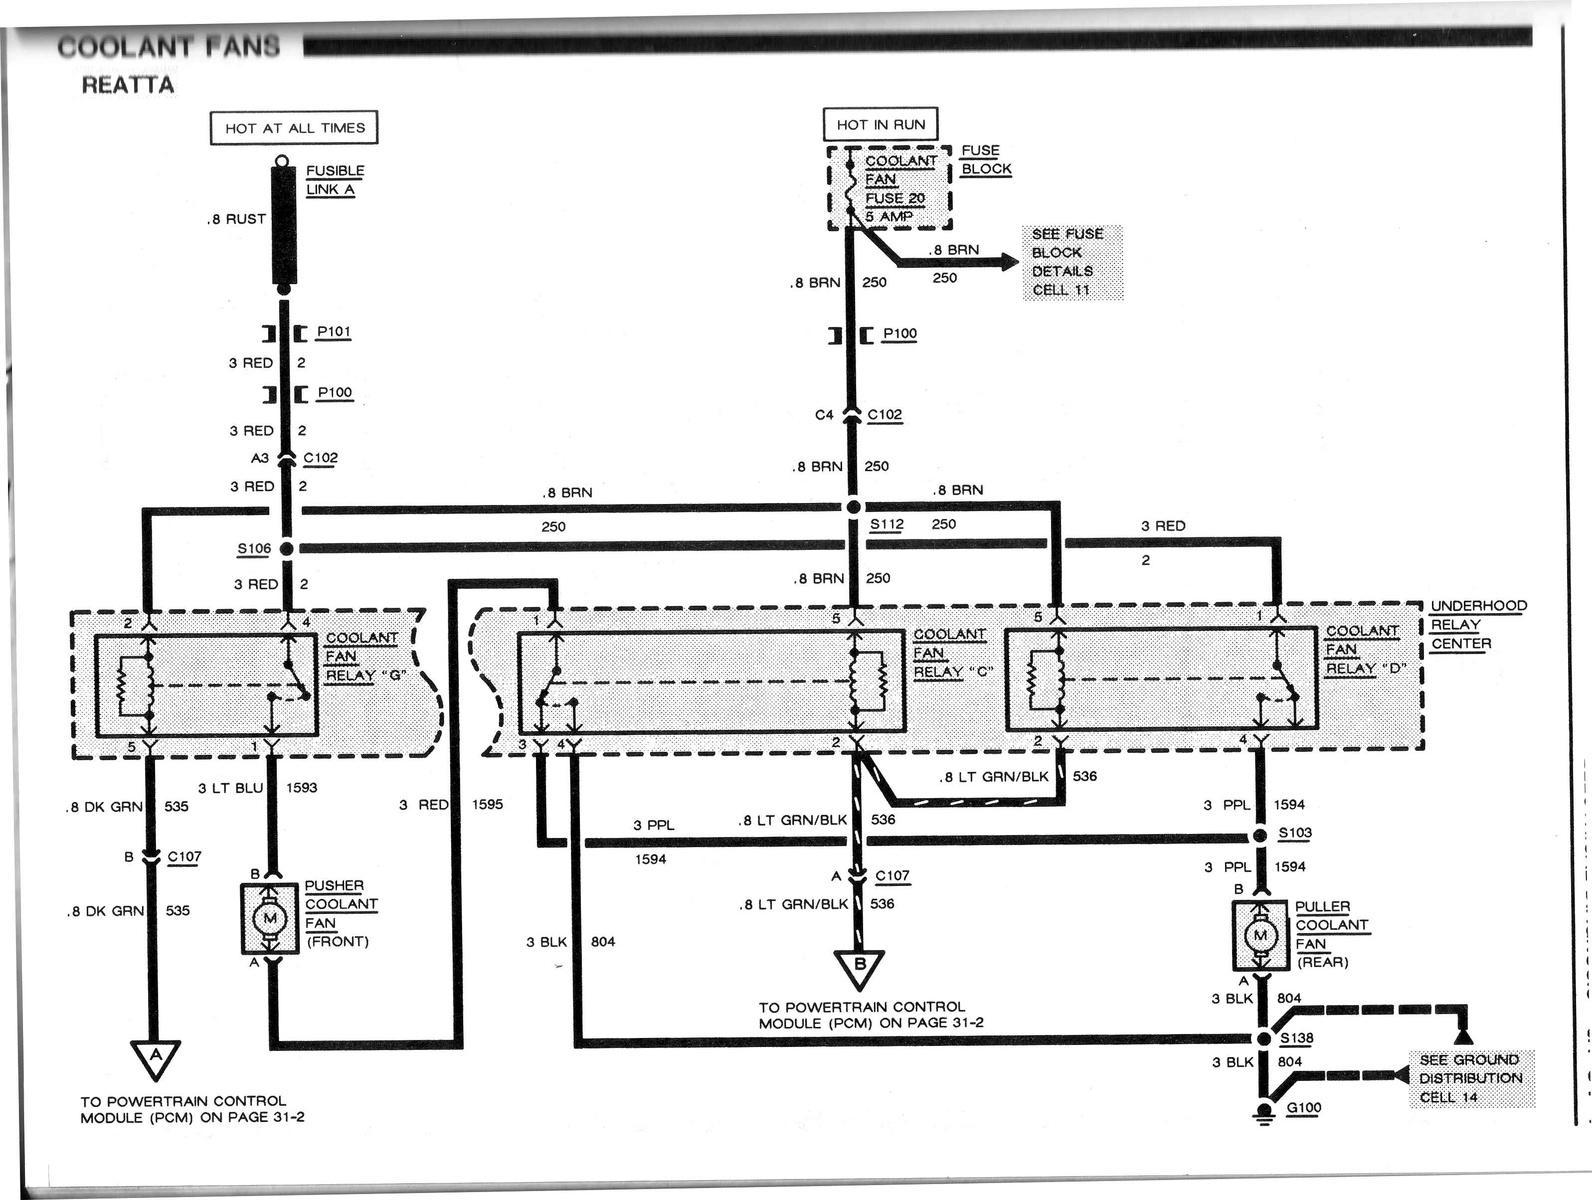 Cooling Fan Wiring Diagram 1995 Buick Riviera • Wiring